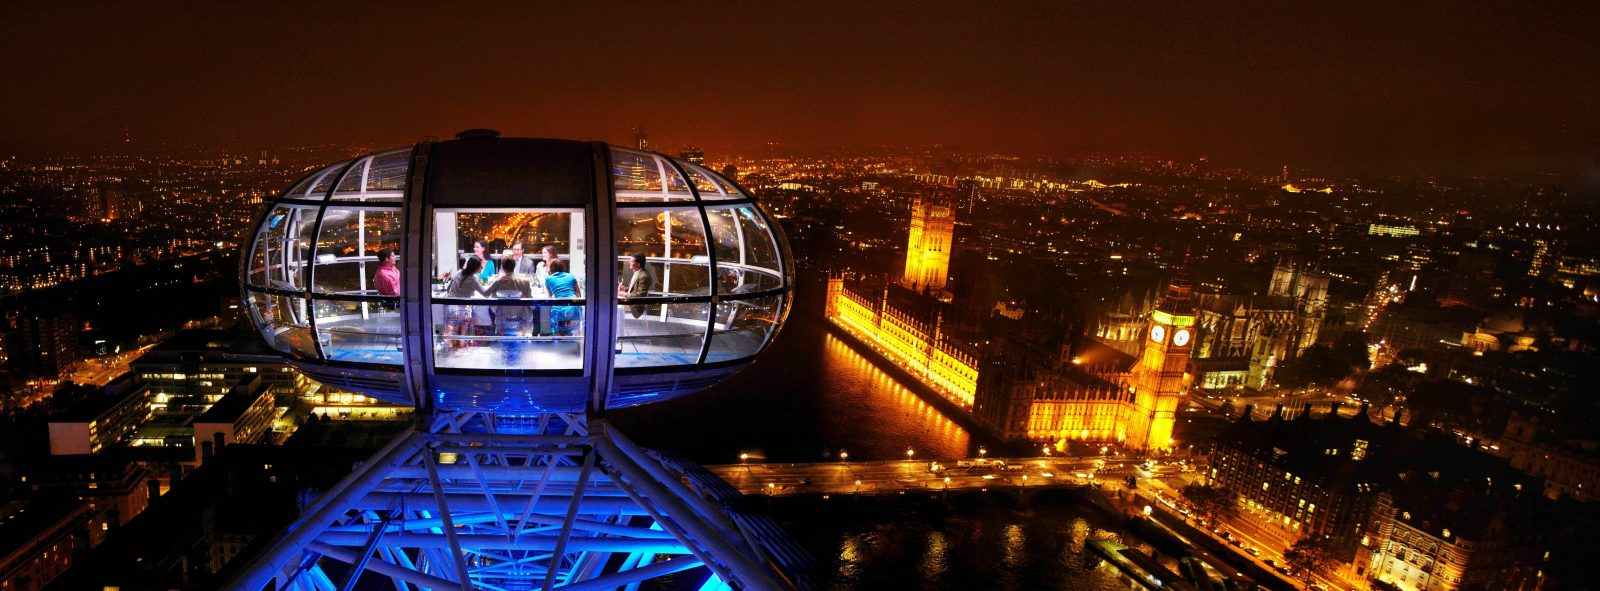 England Corporate Travel Incentives - The London Eye